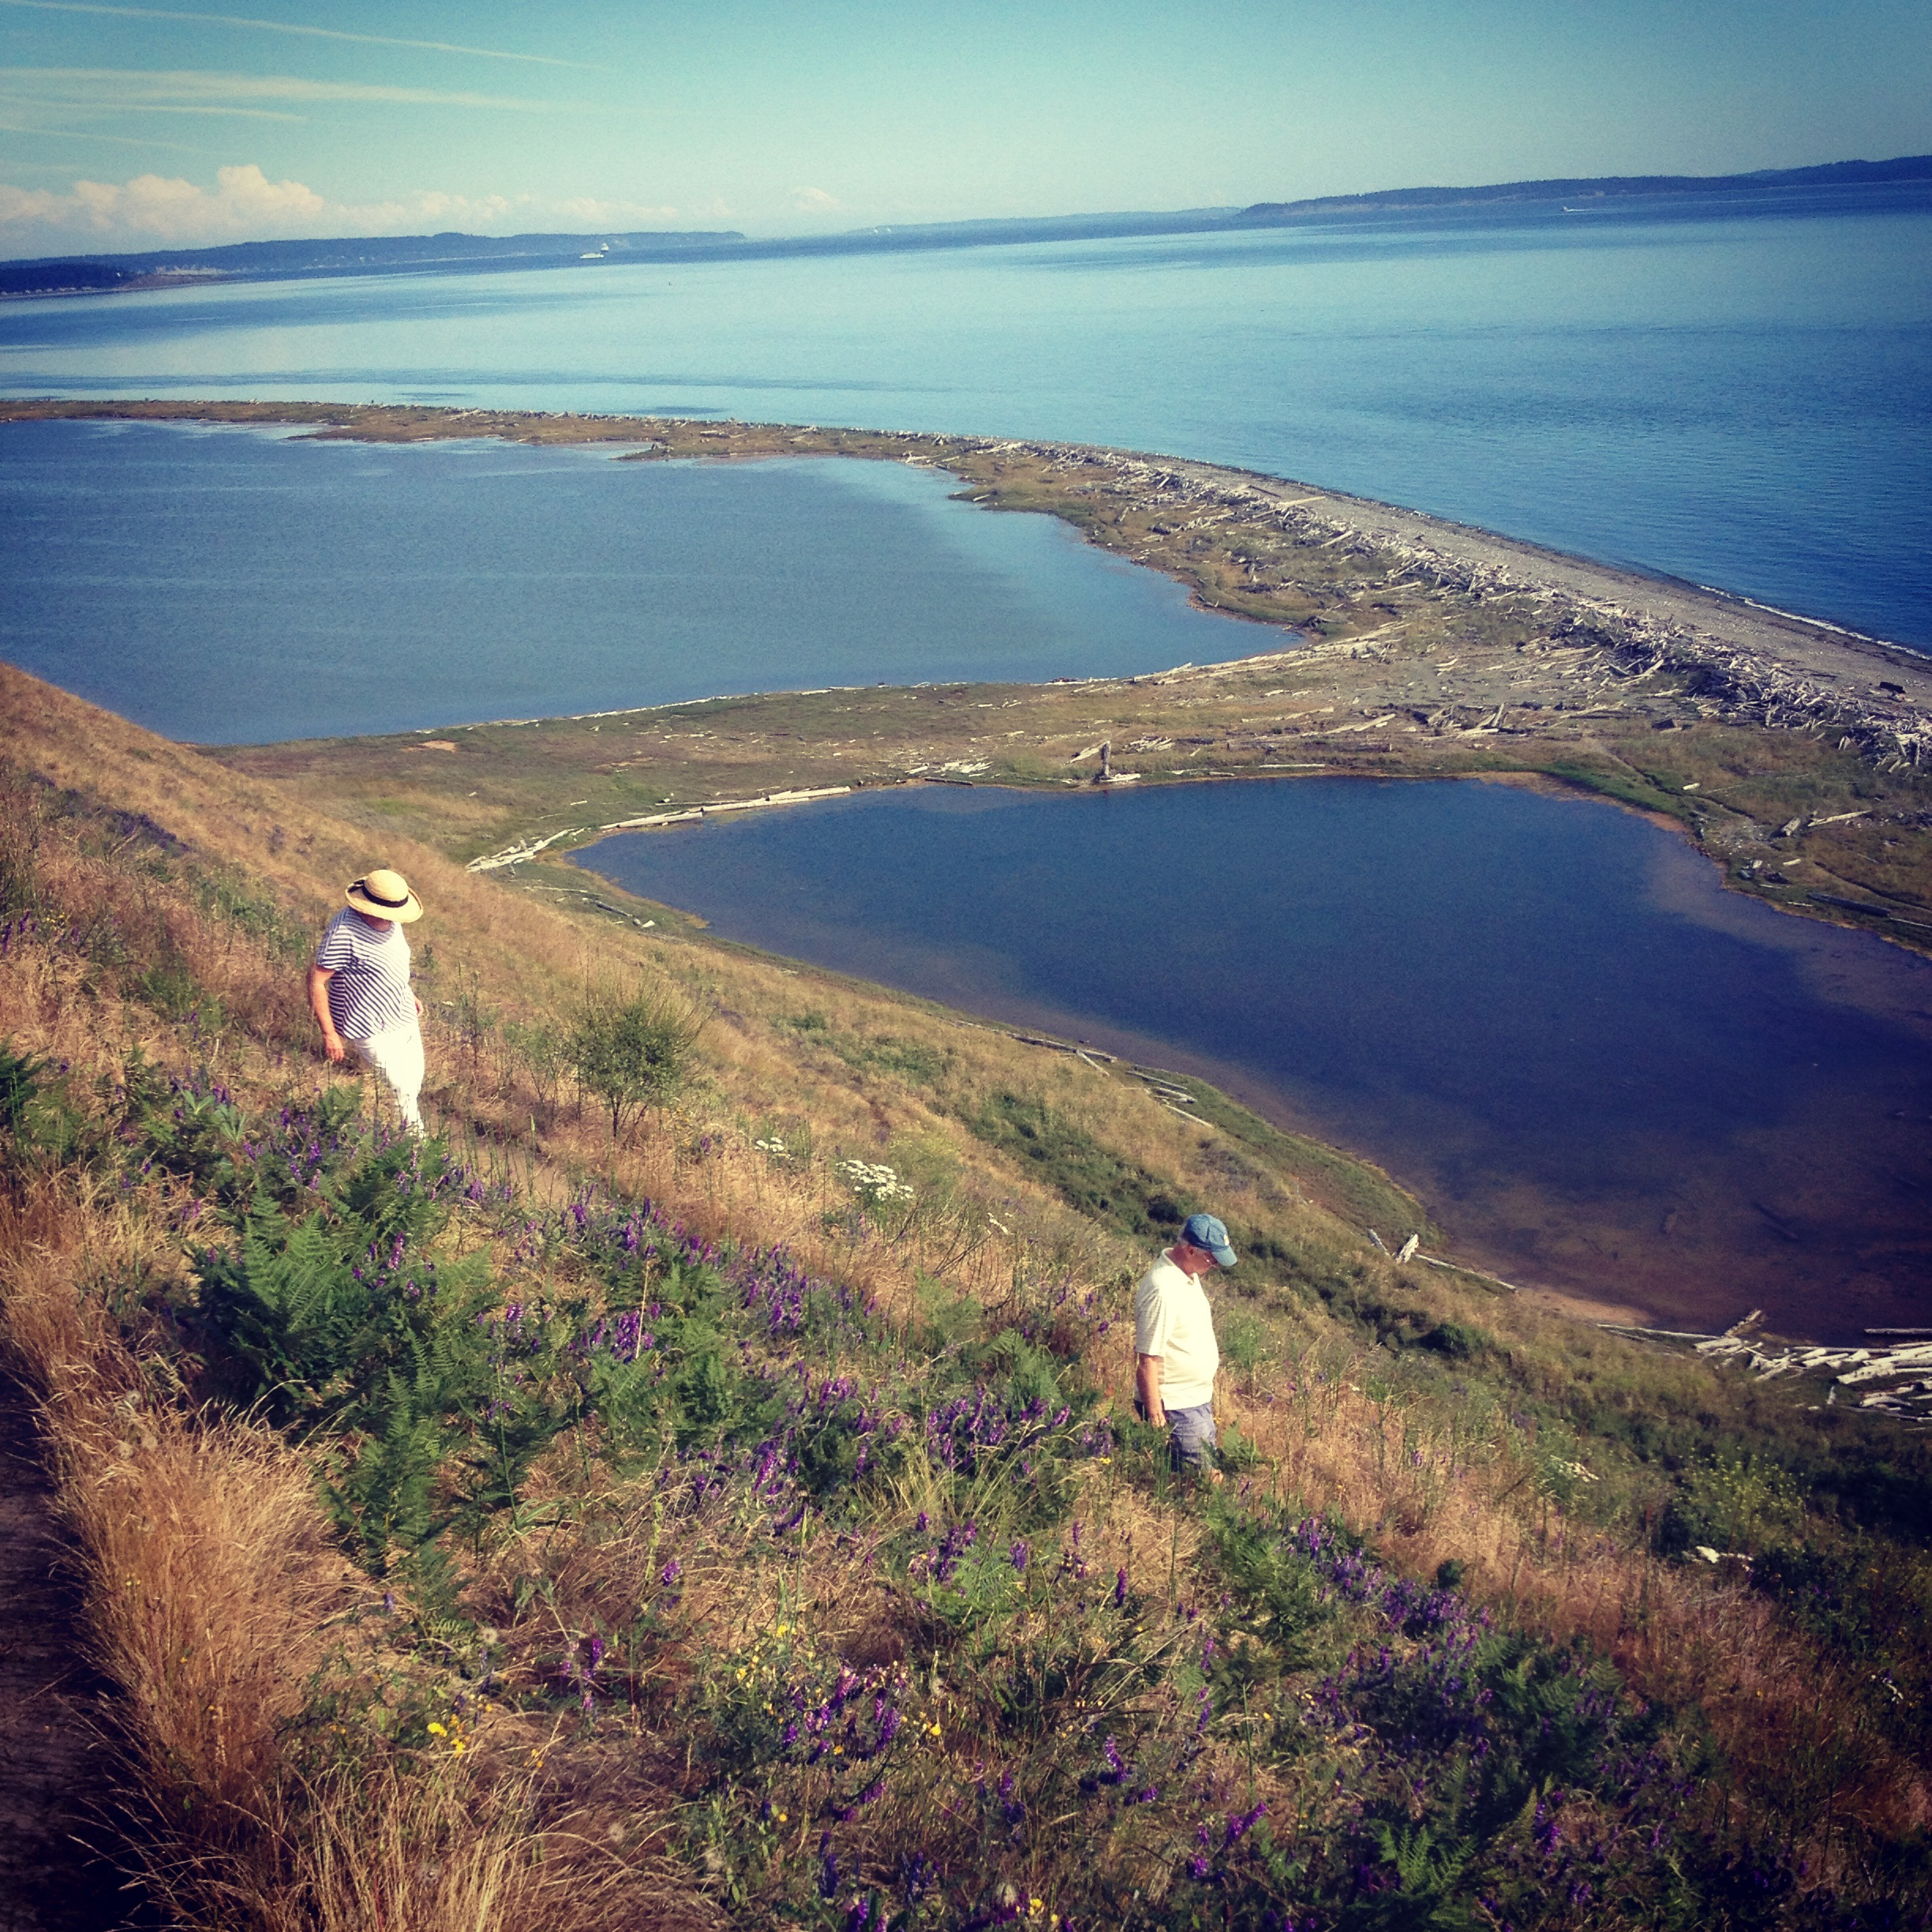 Our regular trek to Ebey's Landing